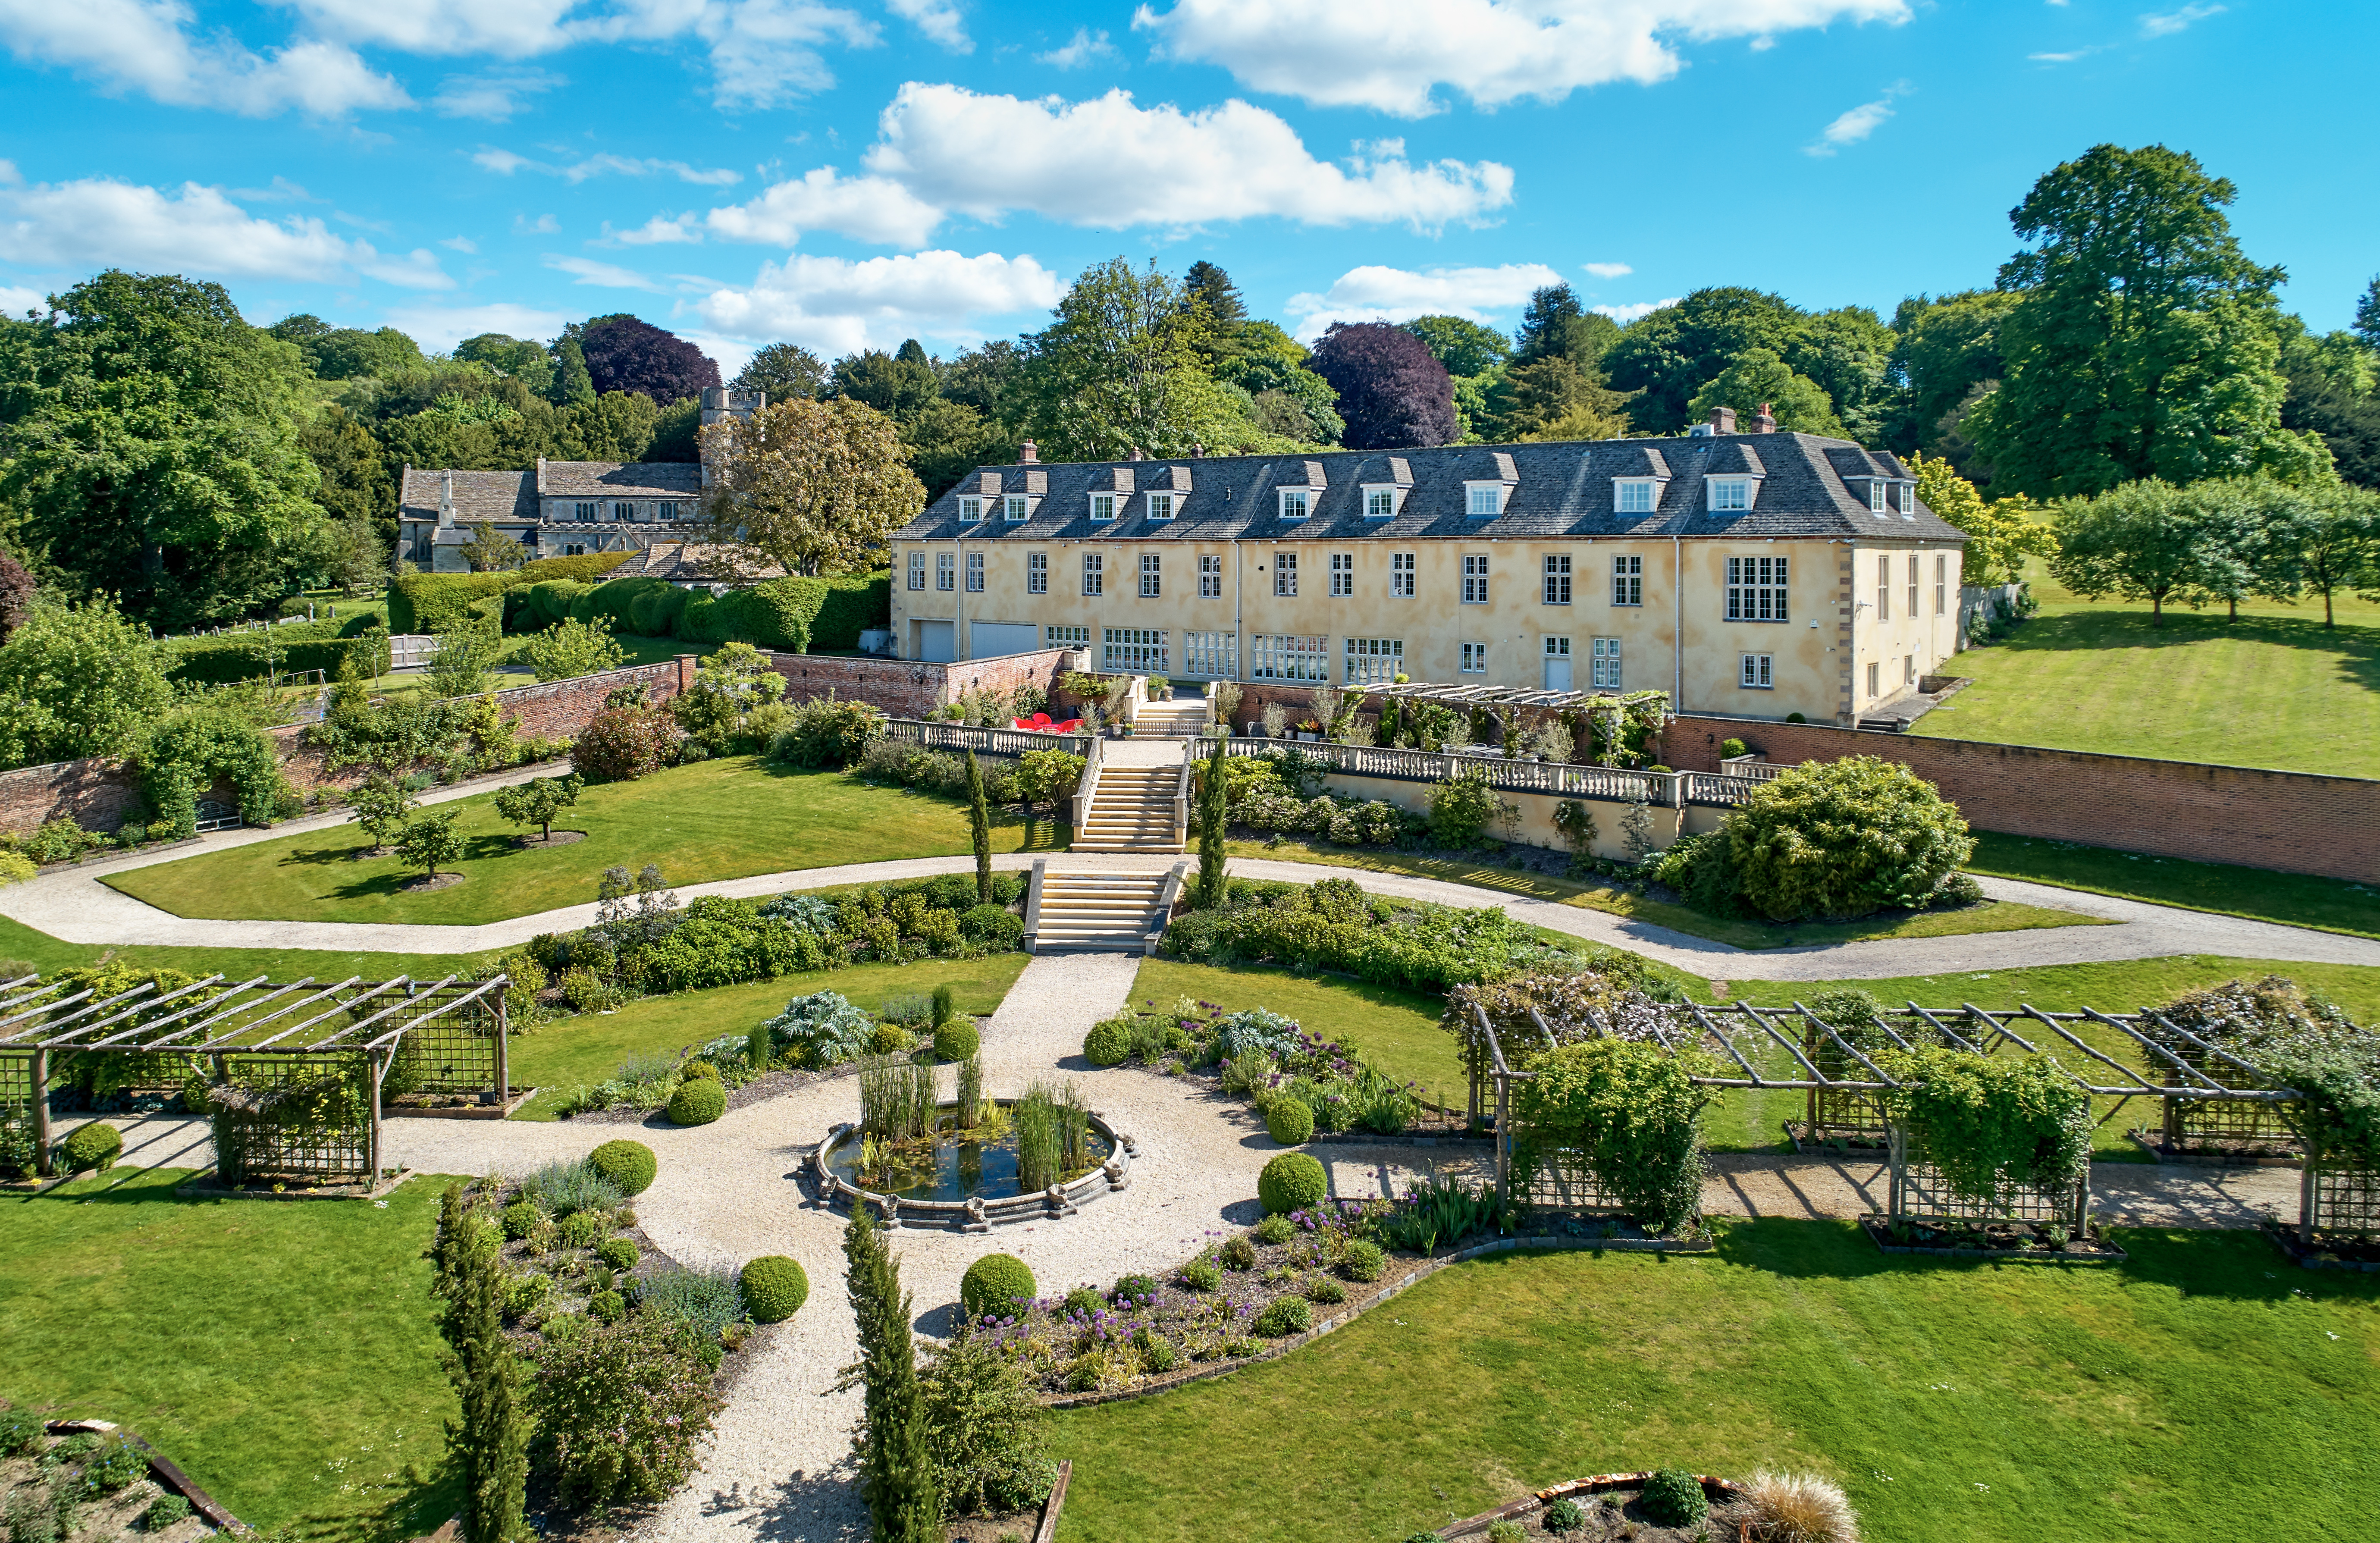 Robbie Williams's family home in Wiltshire is up for sale for £6.75 million — and it definitely won't disappoint - Country Life